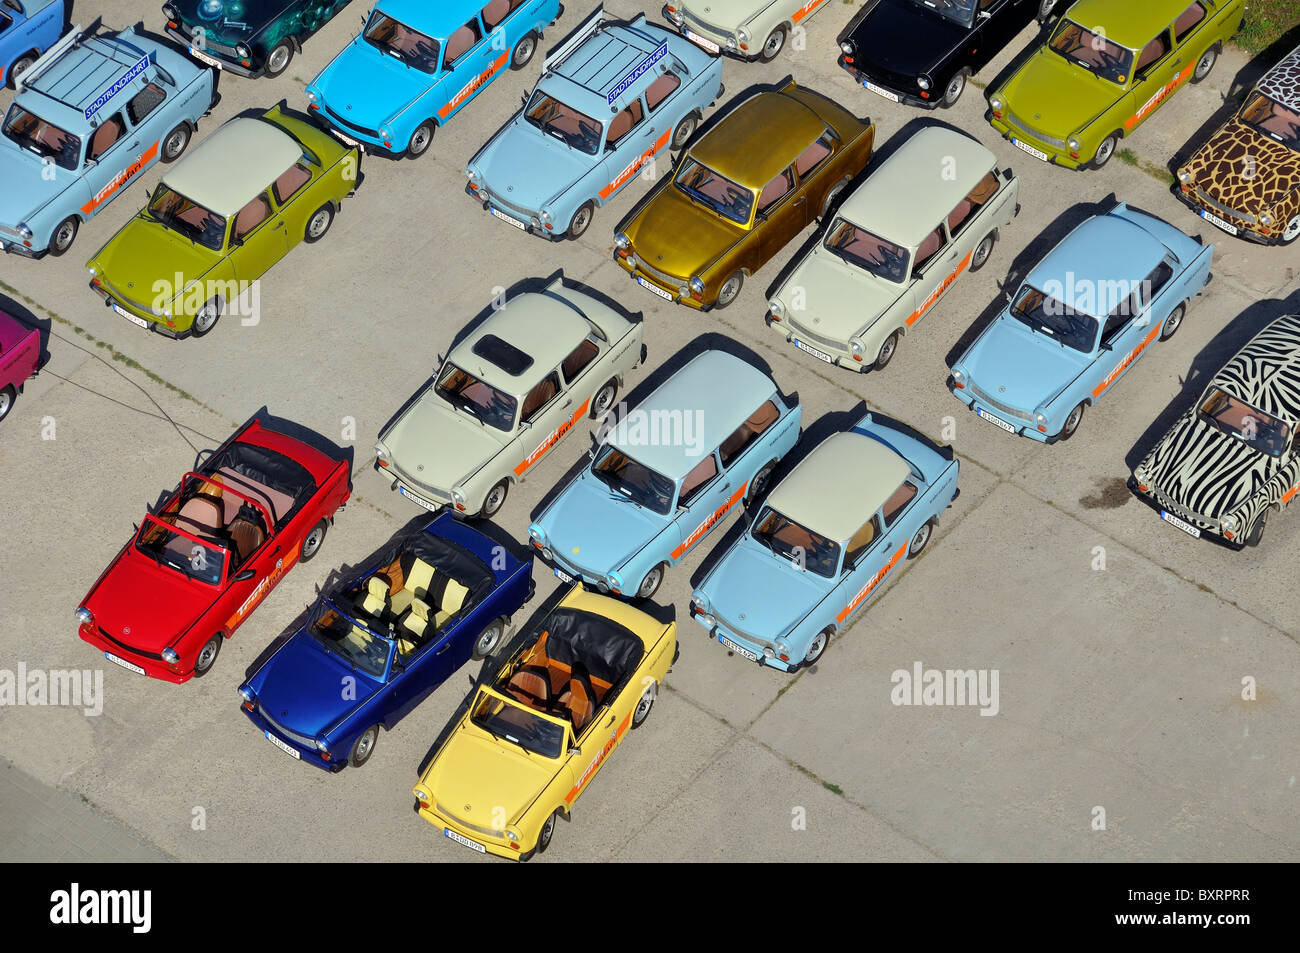 Trabant typical DDR car from the balloon, Berlin, Germany, Europe - Stock Image